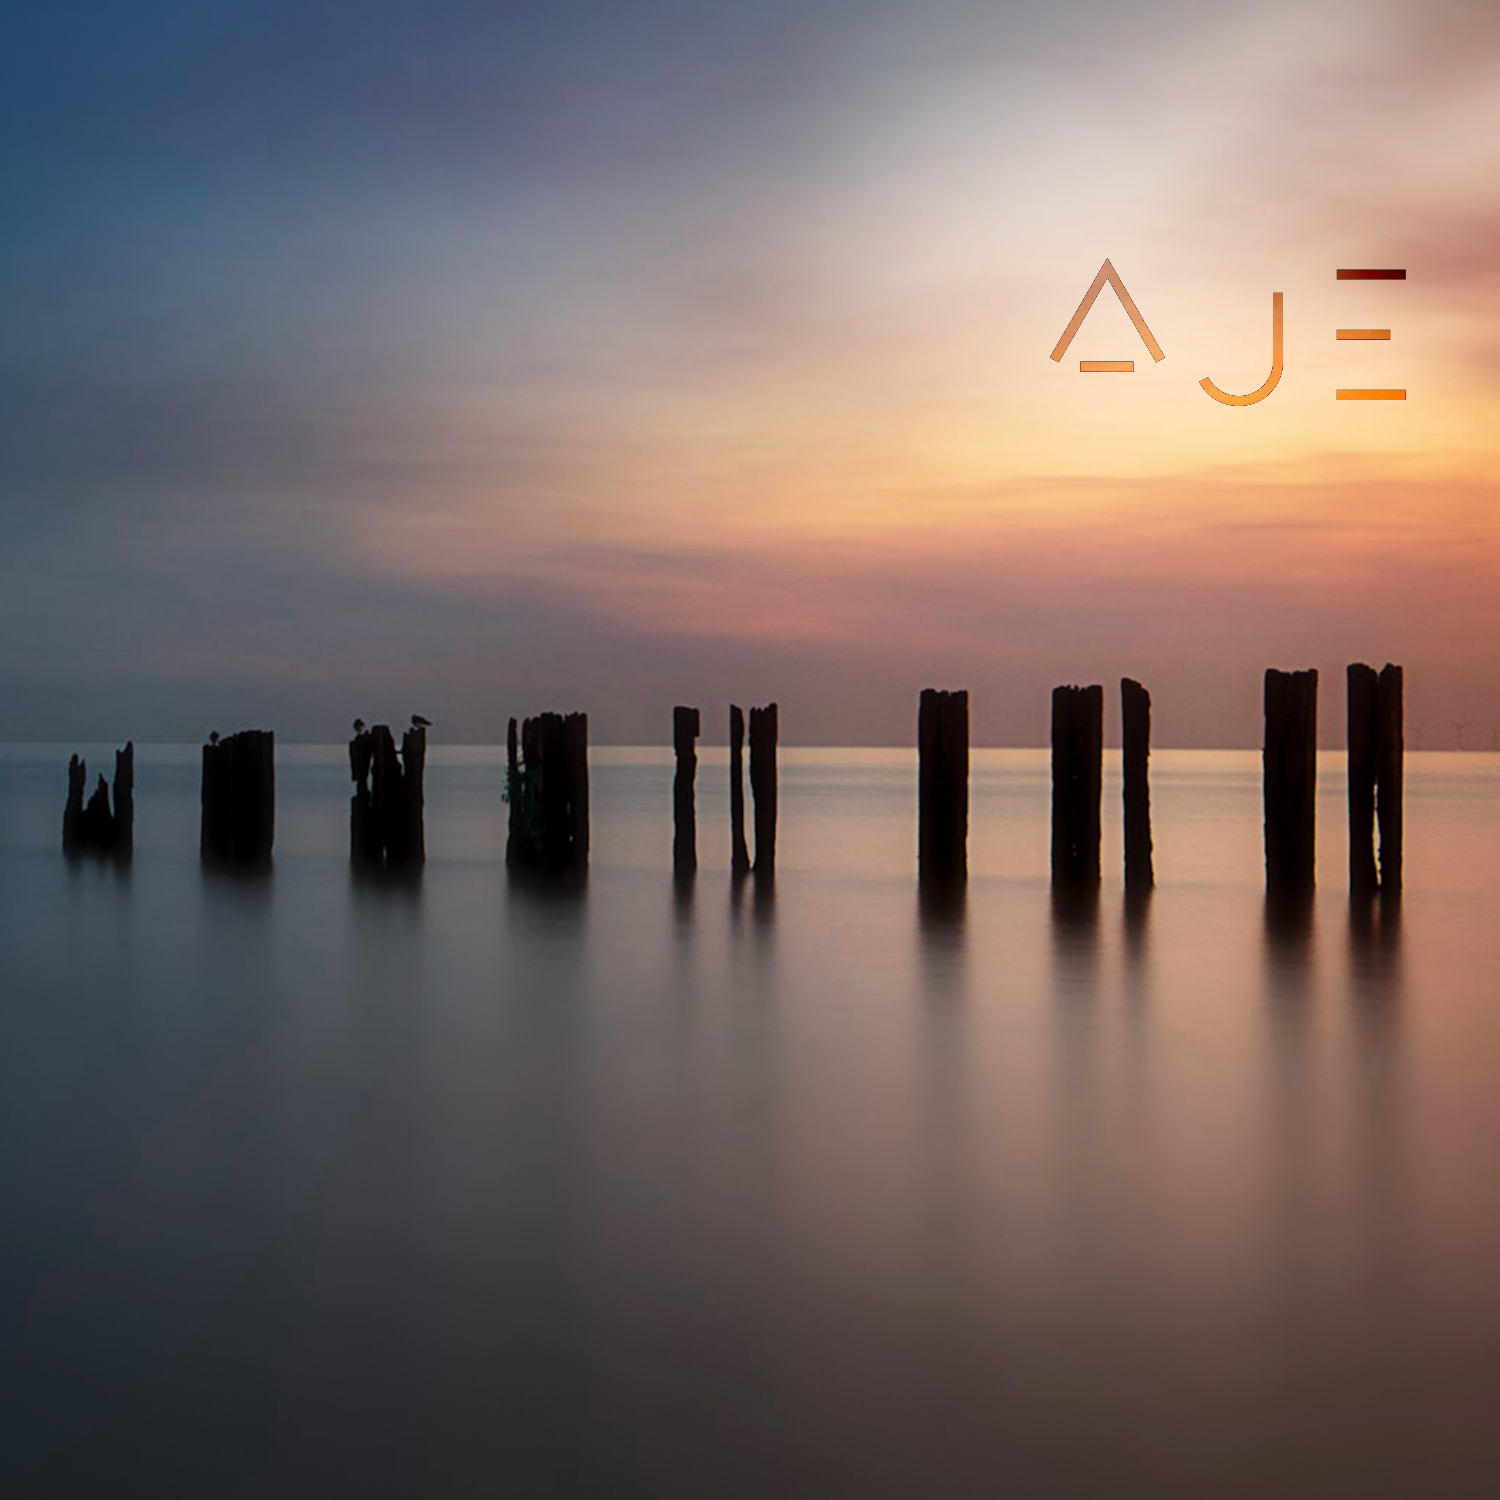 New music, downtempo electronica, Chillout, Cinematic filmscore jazzy lounge music from Colin Baldry's Ambient Jazz Ensemble on Here & Now Recordings Cinematic Sounds from Woking, Surrey